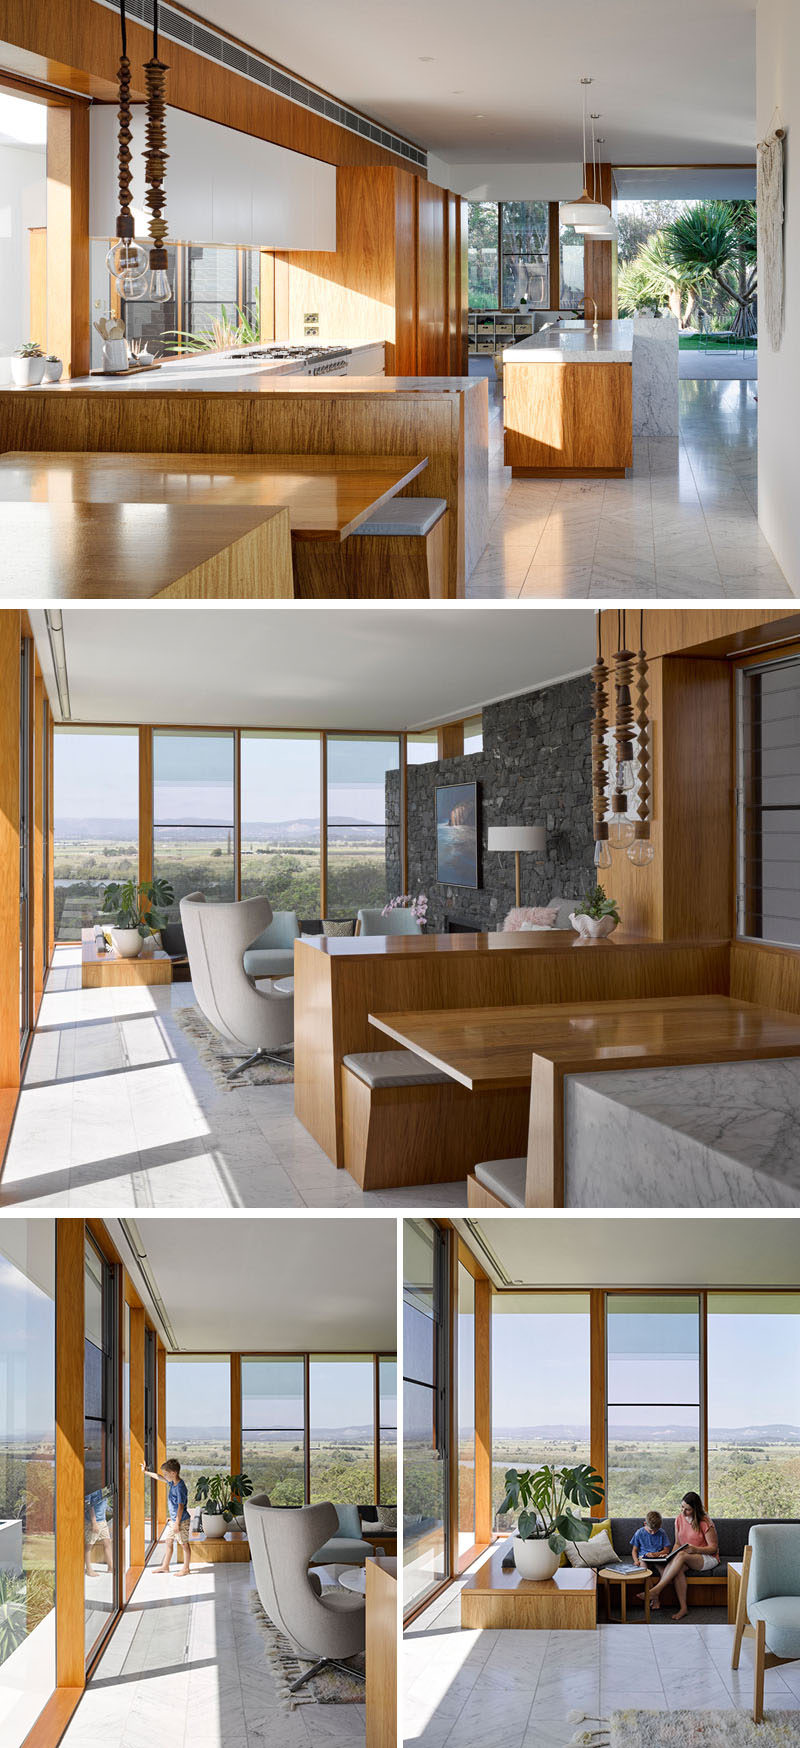 Next to this contemporary wood kitchen is a more casual built-in dining area or breakfast booth. Next to the breakfast booth is the living room, and stepping down from the living room is a sunken lounge.